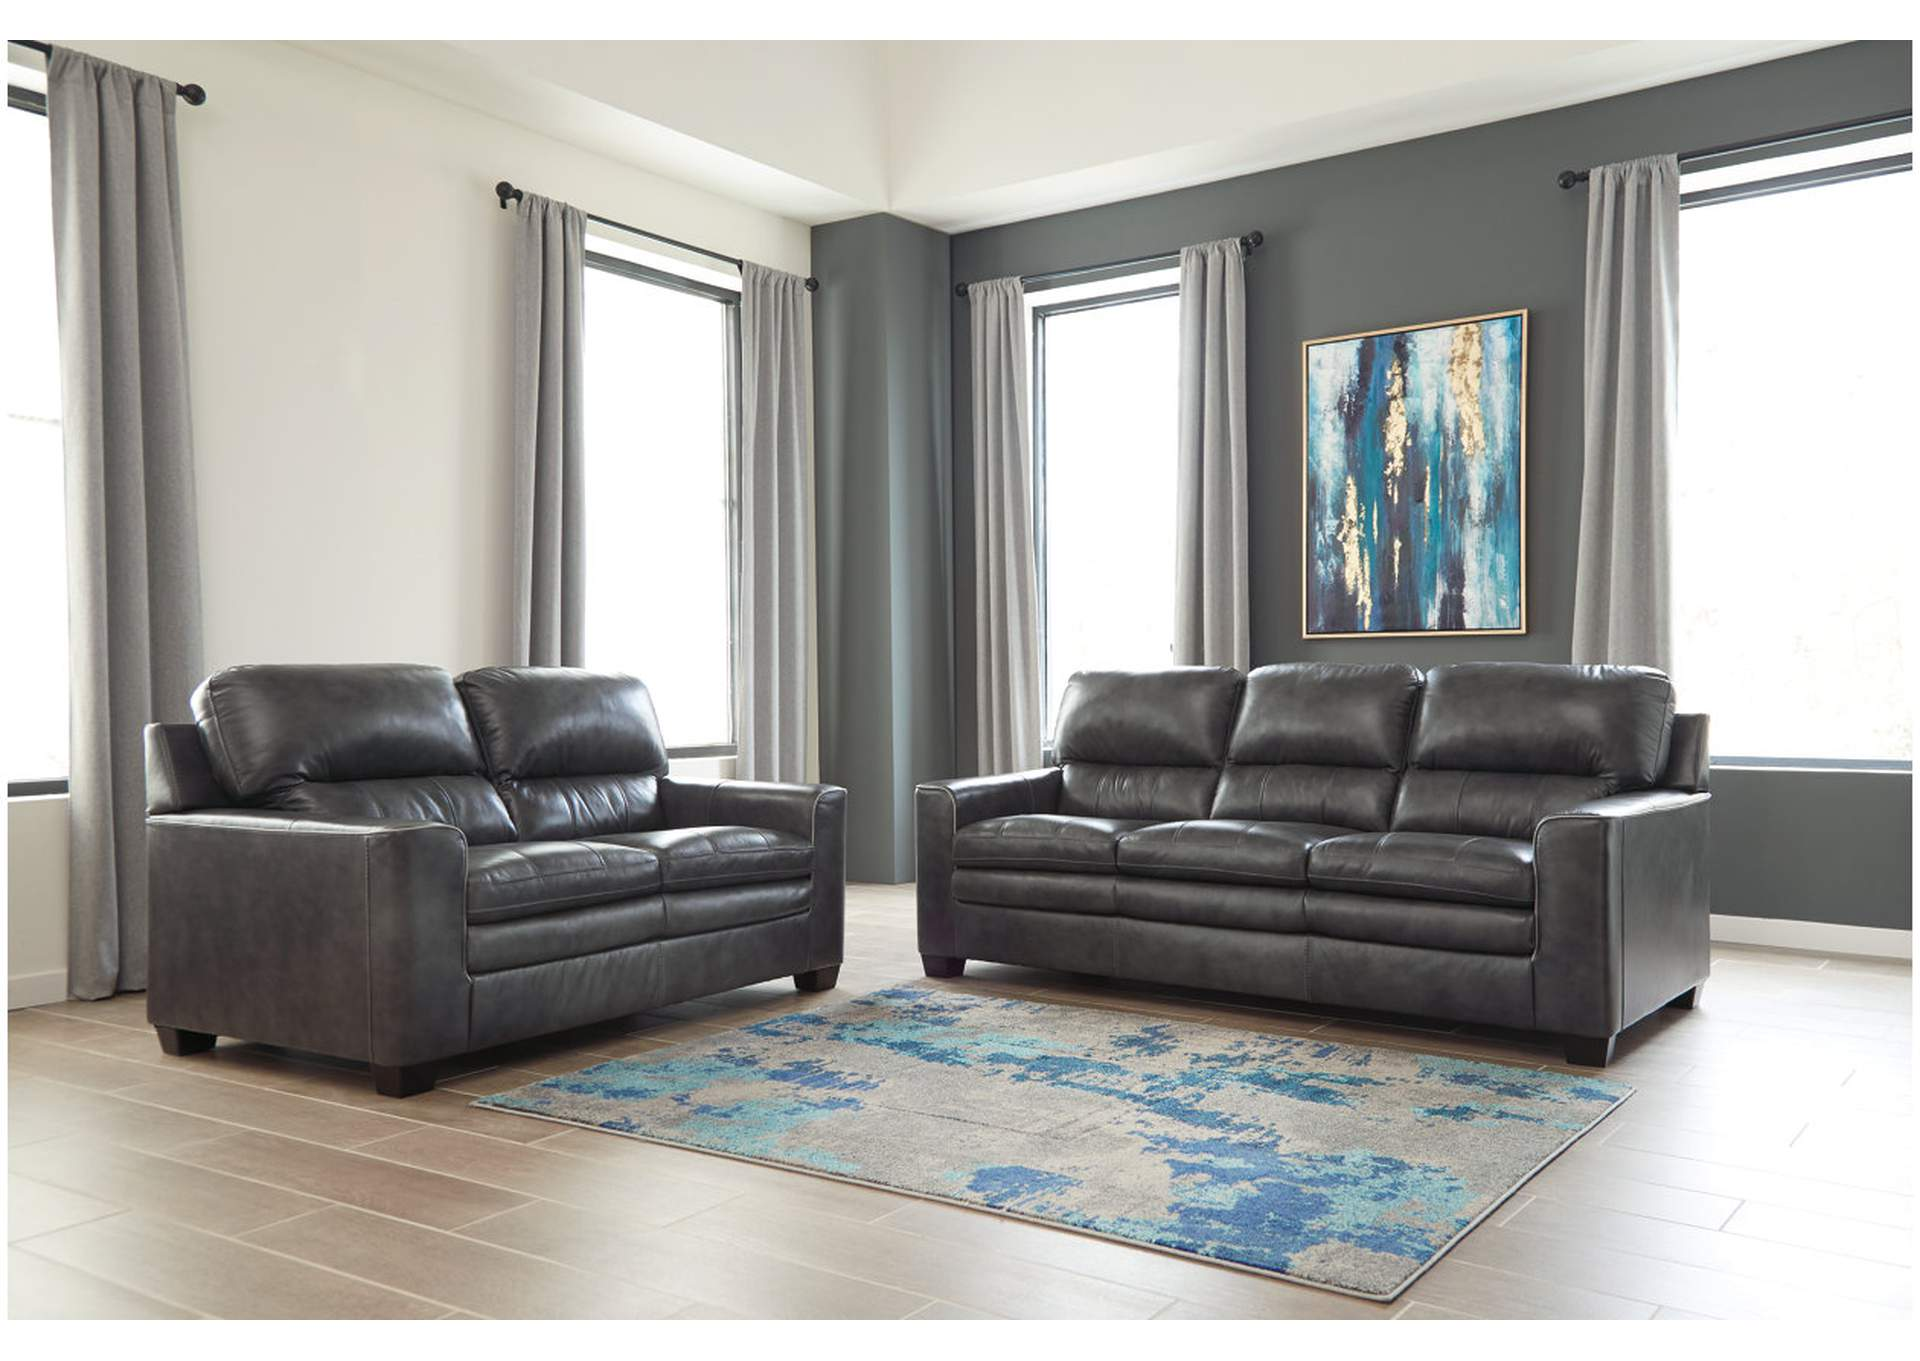 Superb Payless Furniture Houston Tx Pasedena Tx Texas Gleason Download Free Architecture Designs Scobabritishbridgeorg